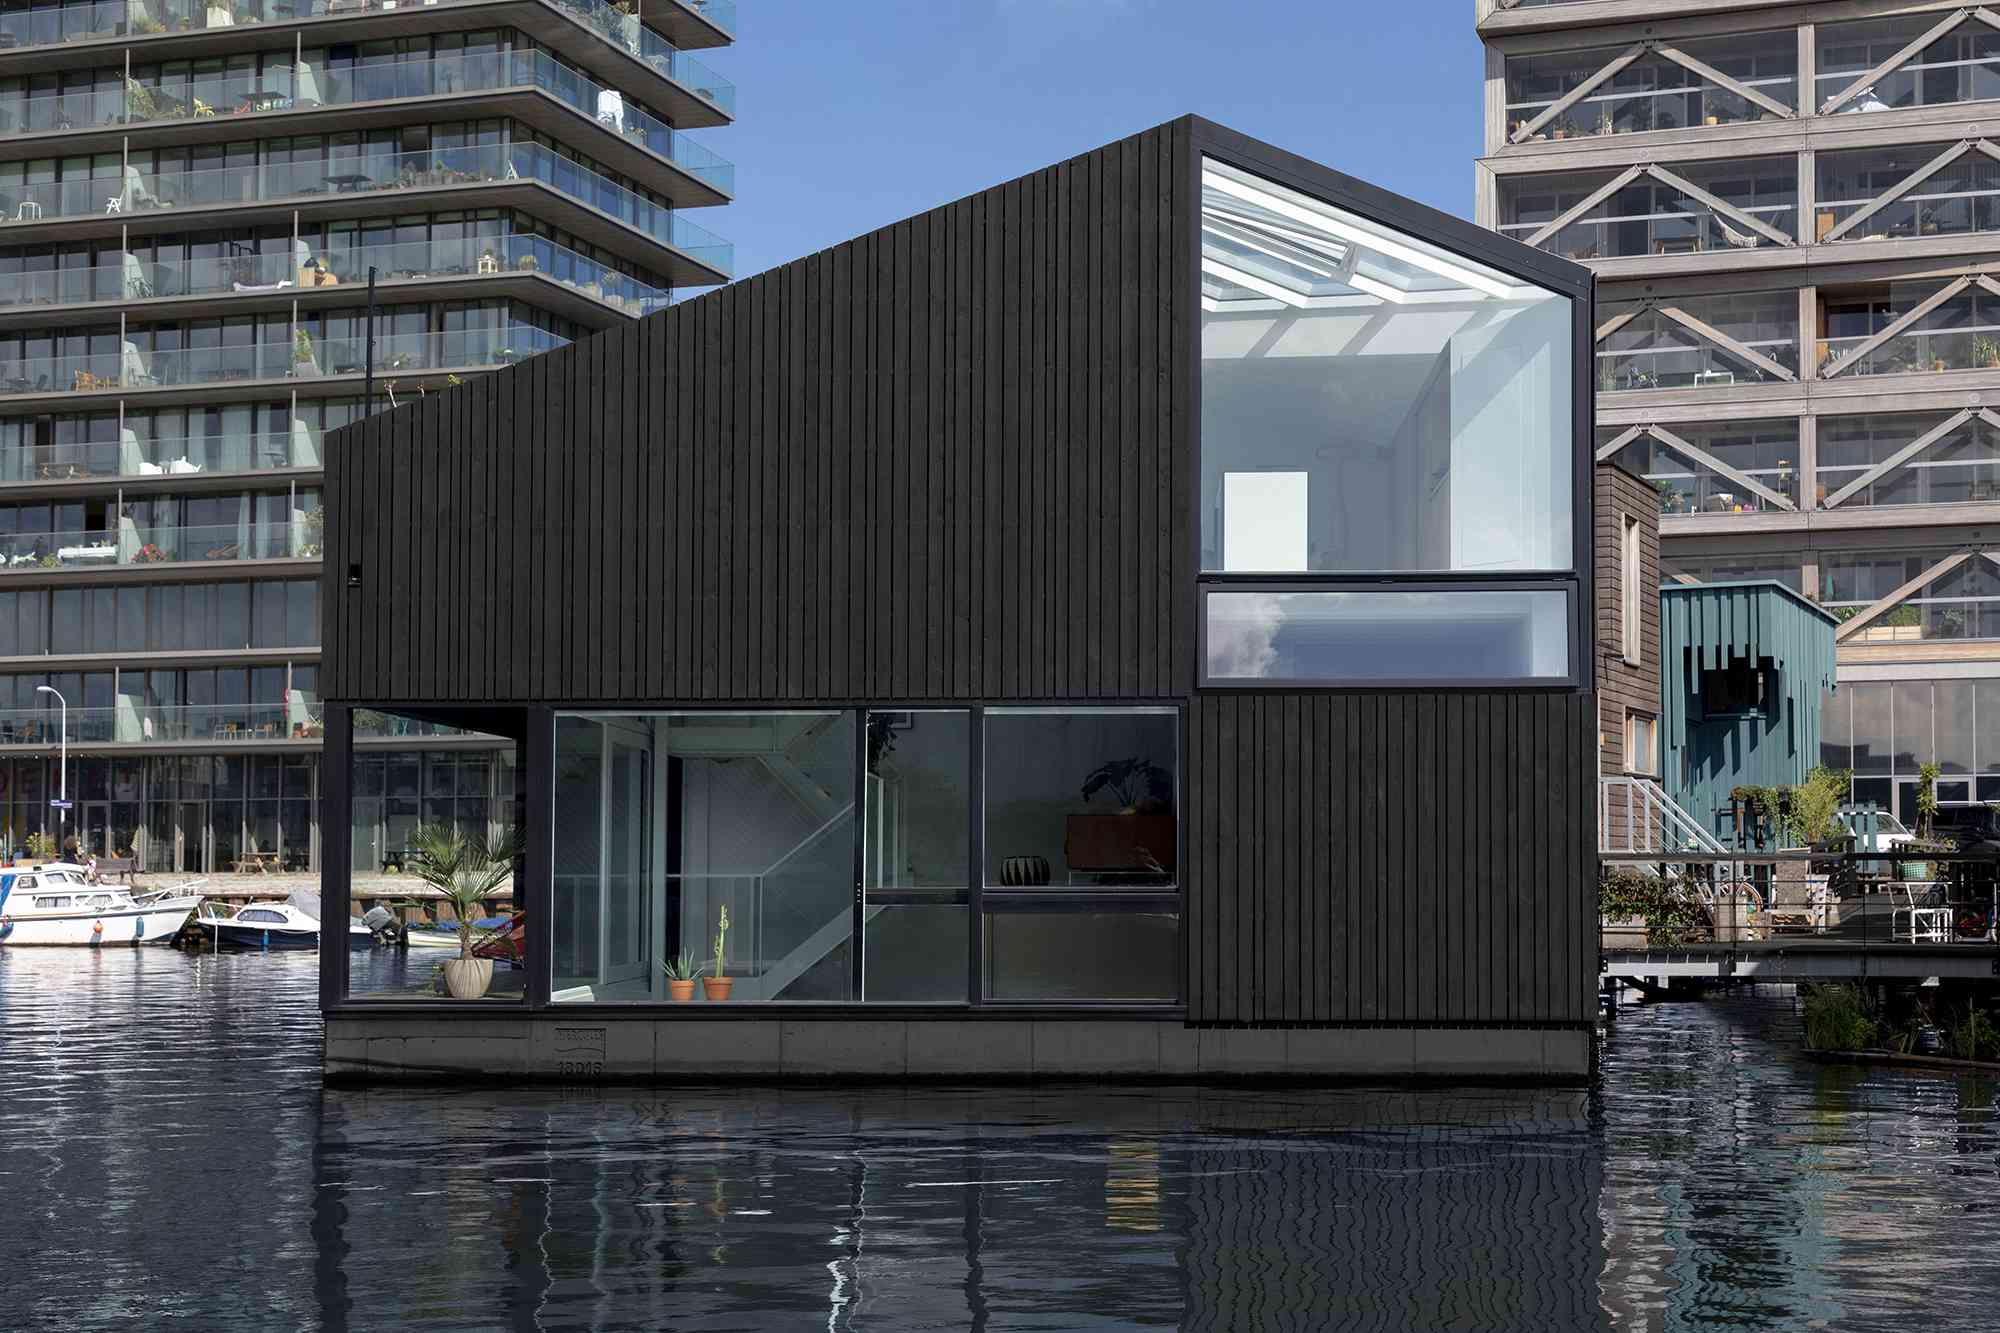 Exterior of floating home